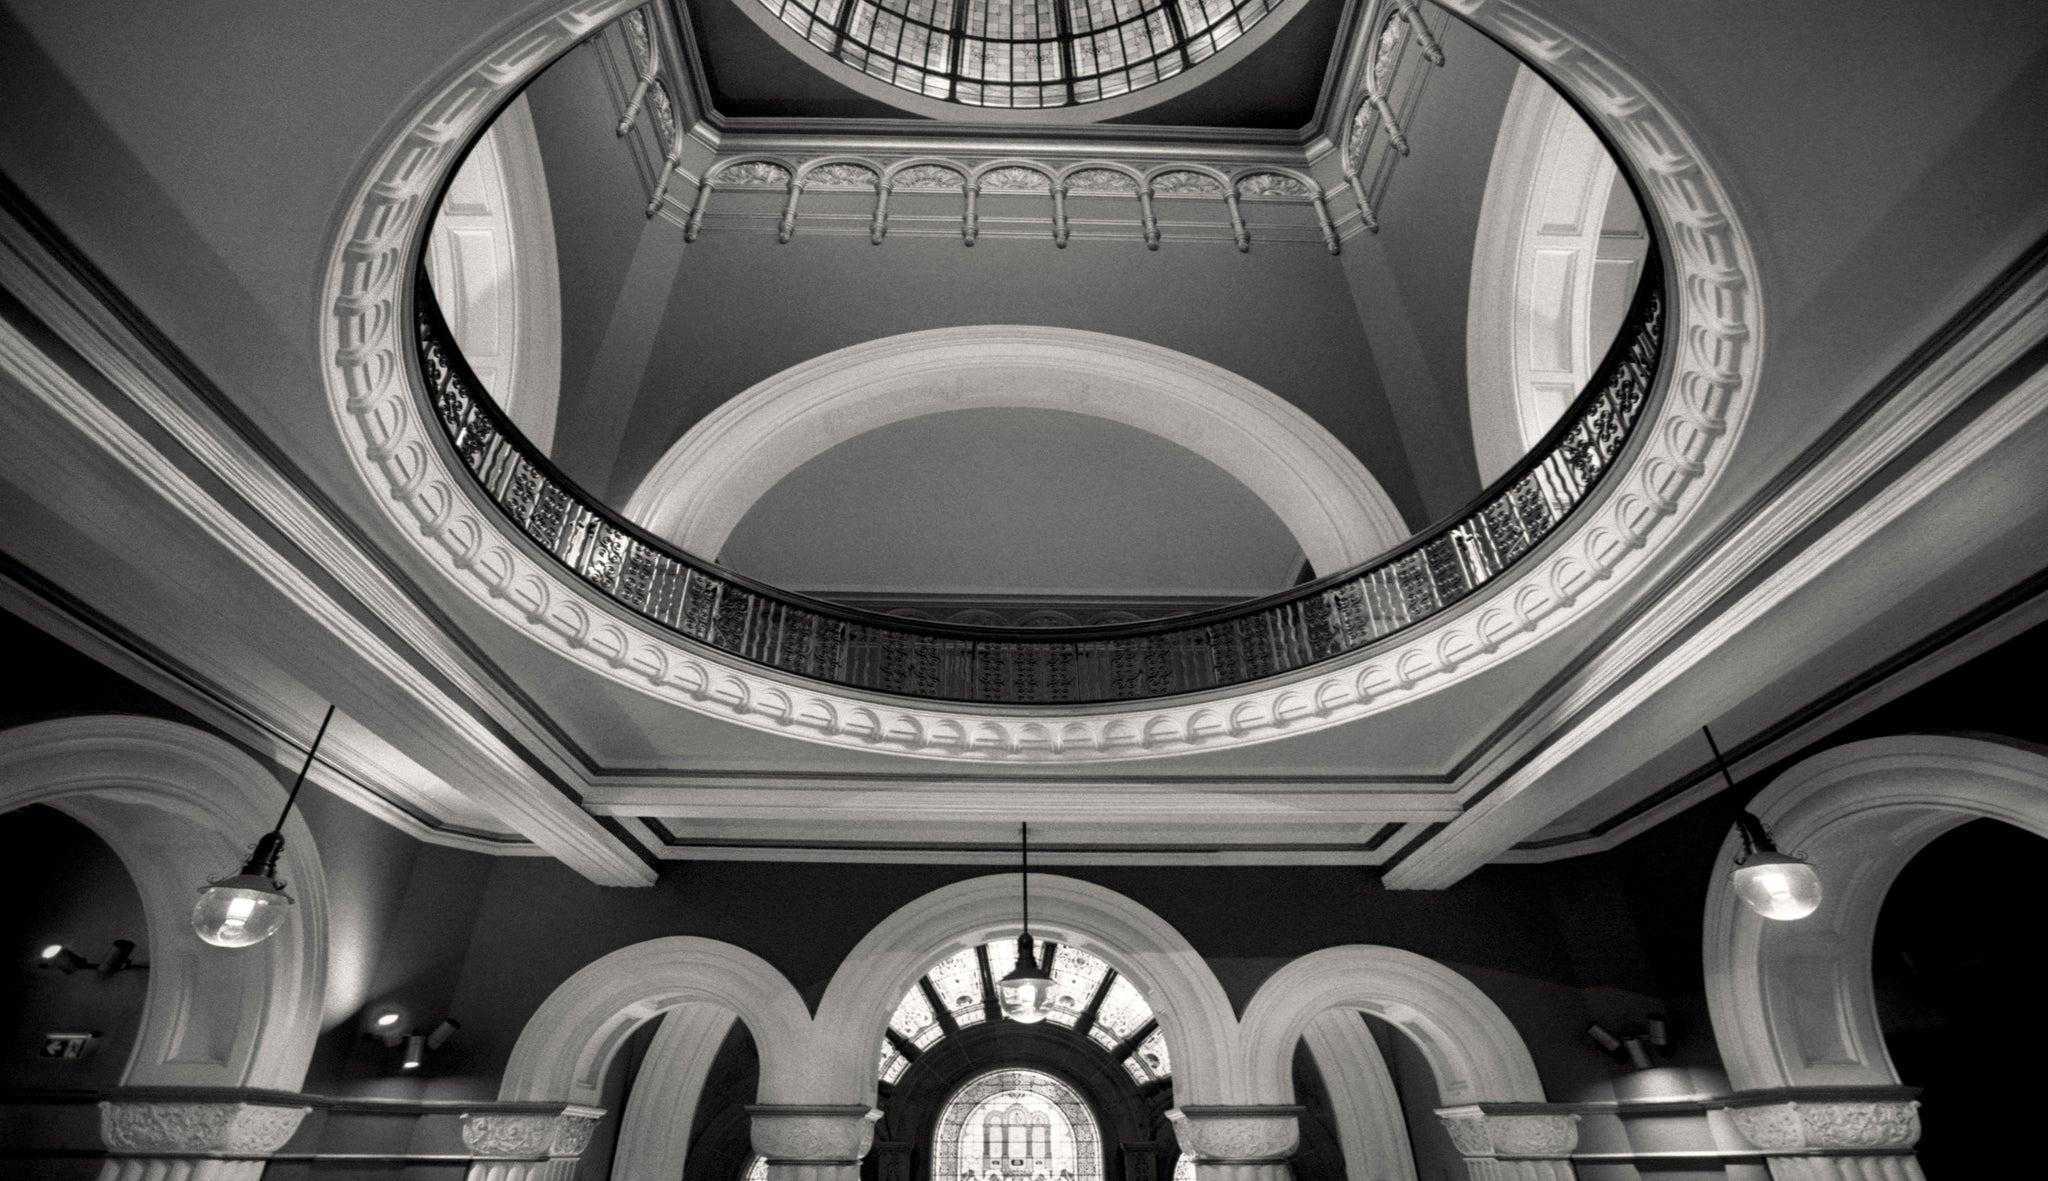 Queen victoria building sydney australia black and white photography